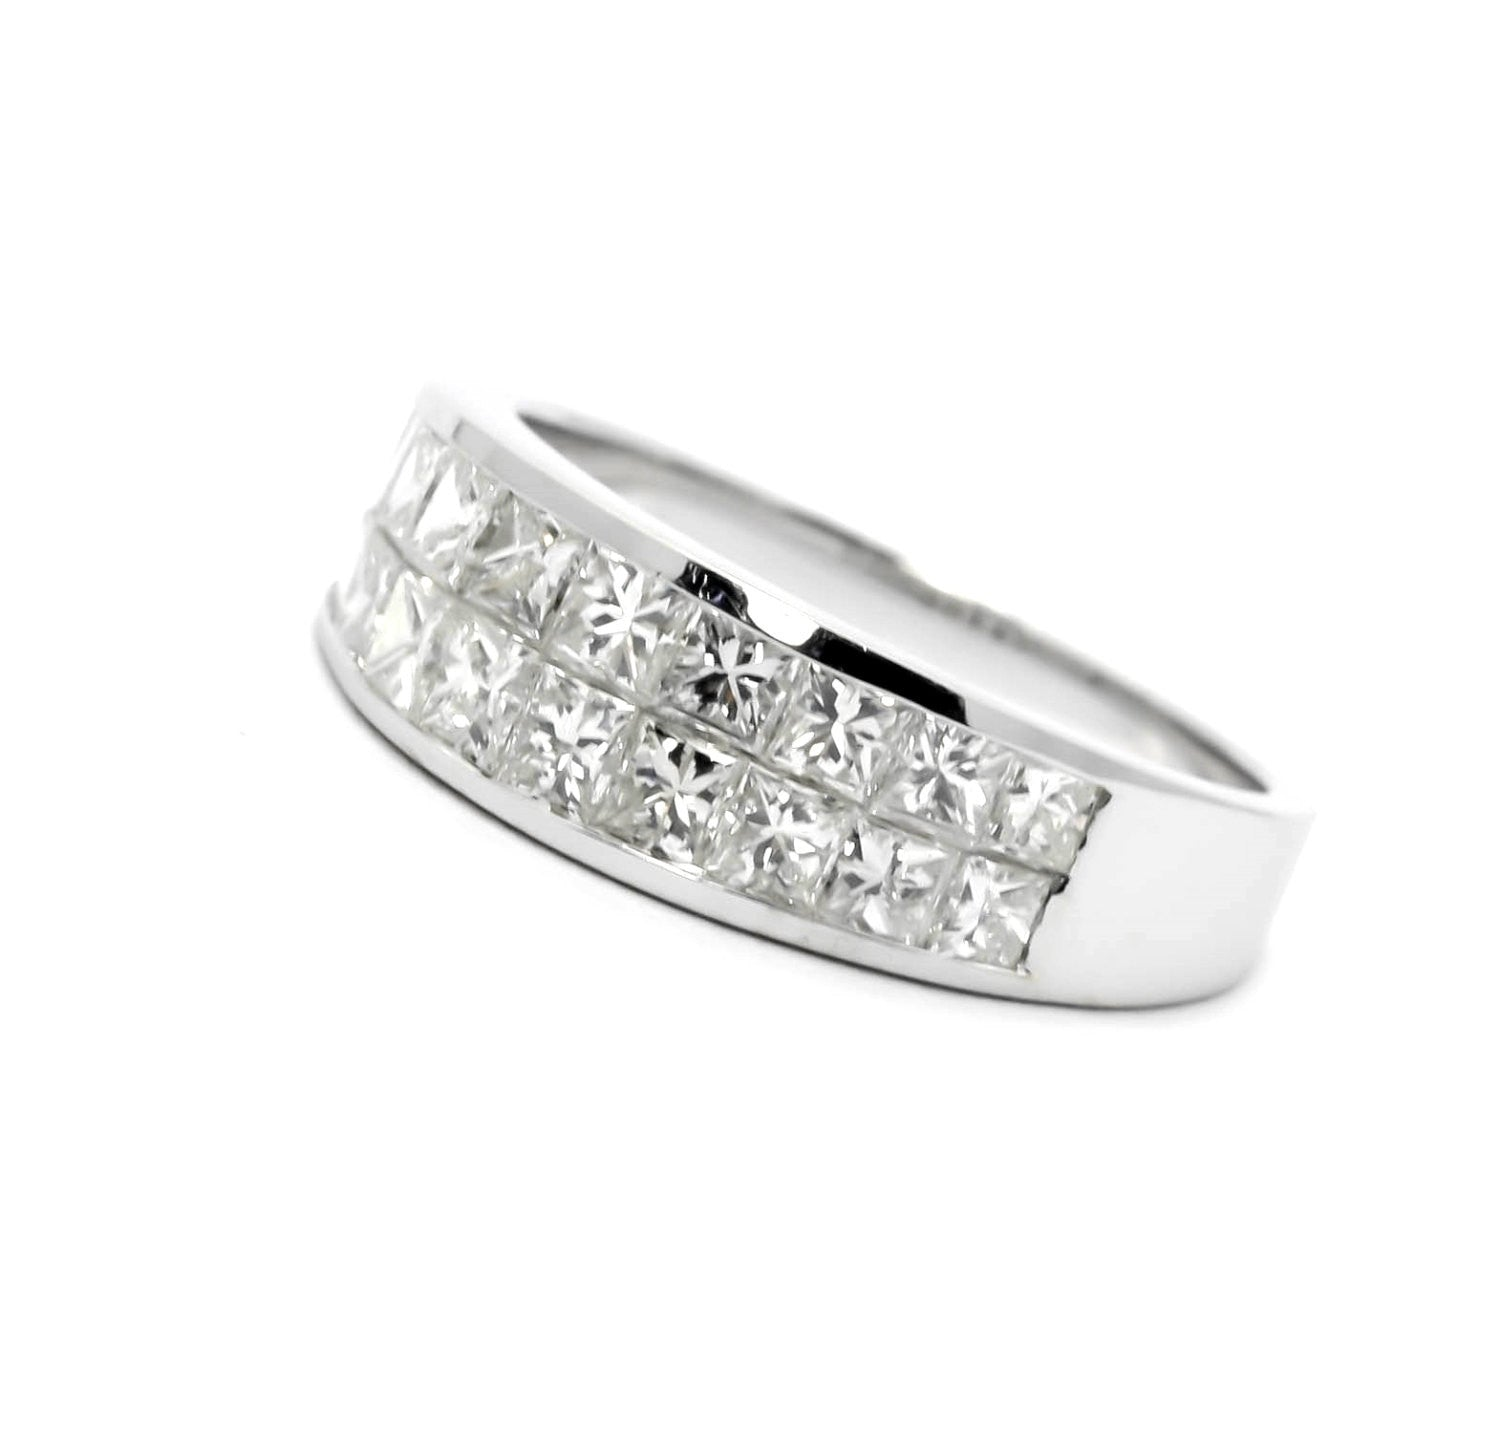 bands anniversary princess eternity rings infinity diamond ester international cut band wg matching diamonds brisbane